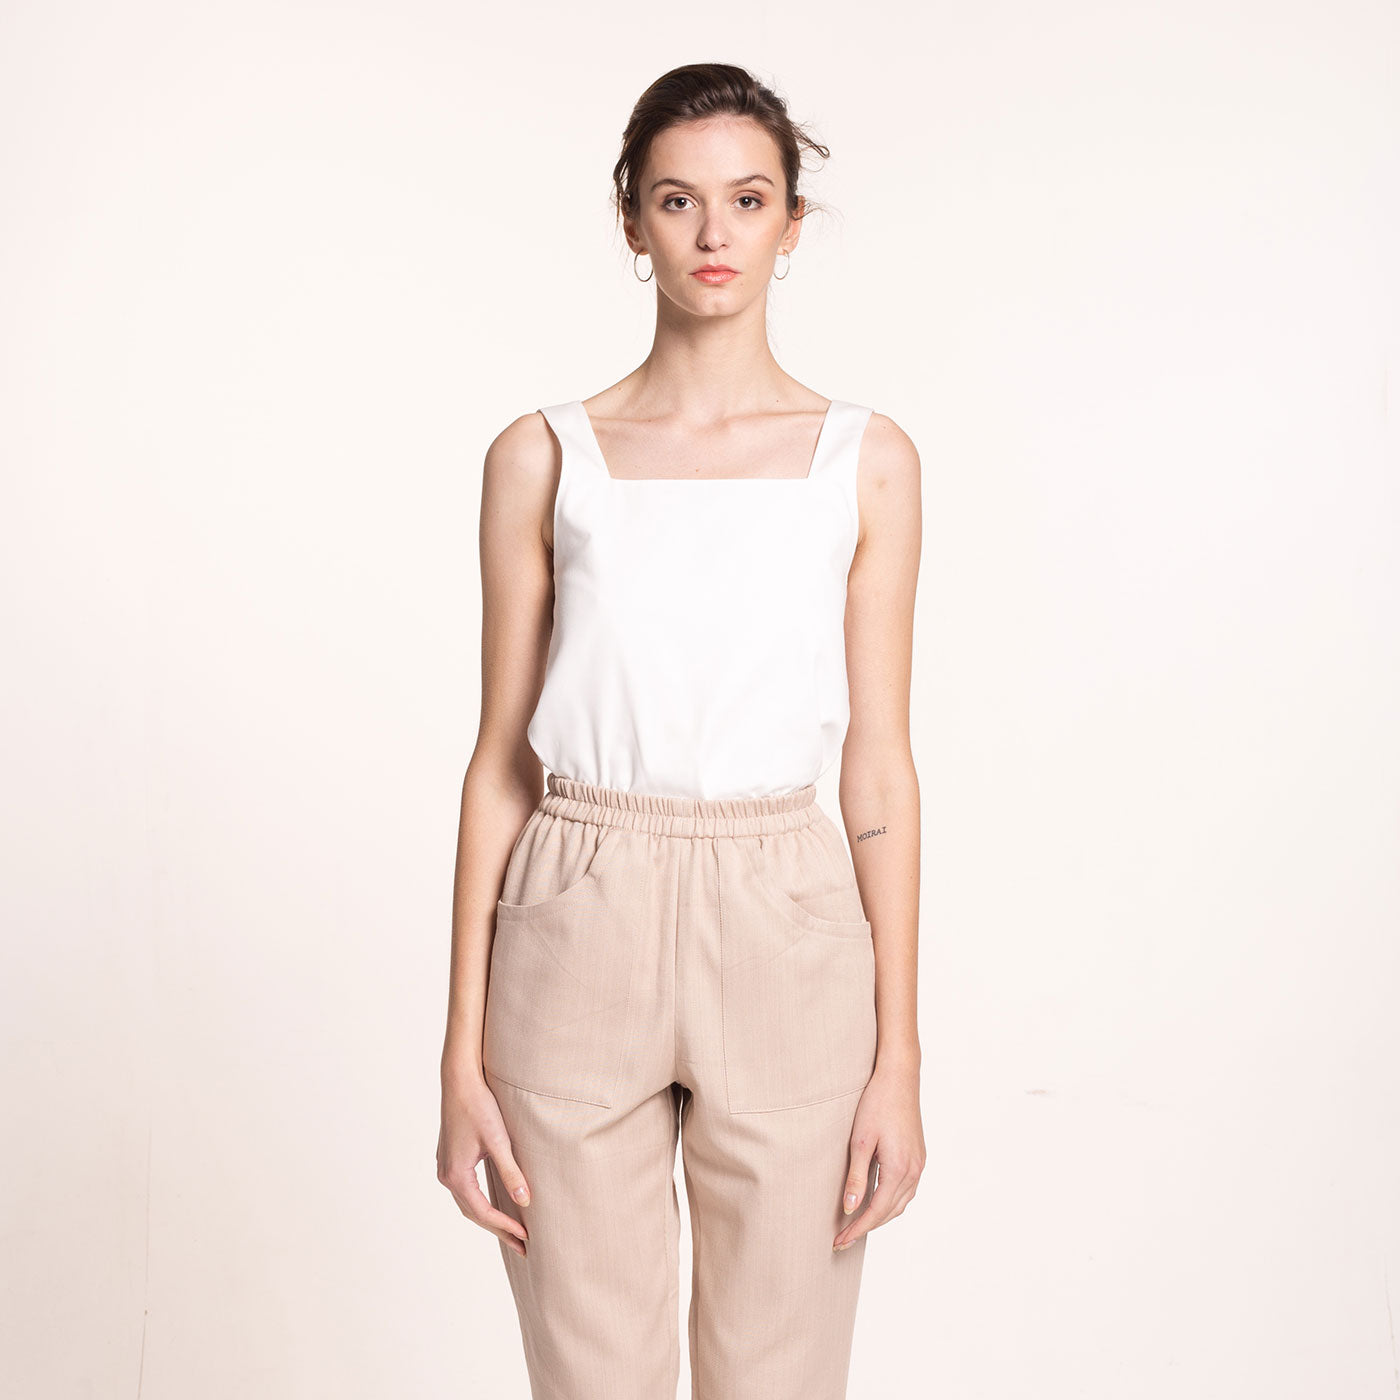 The model wears a white, sustainable, organic cotton, wide straps top, front view.